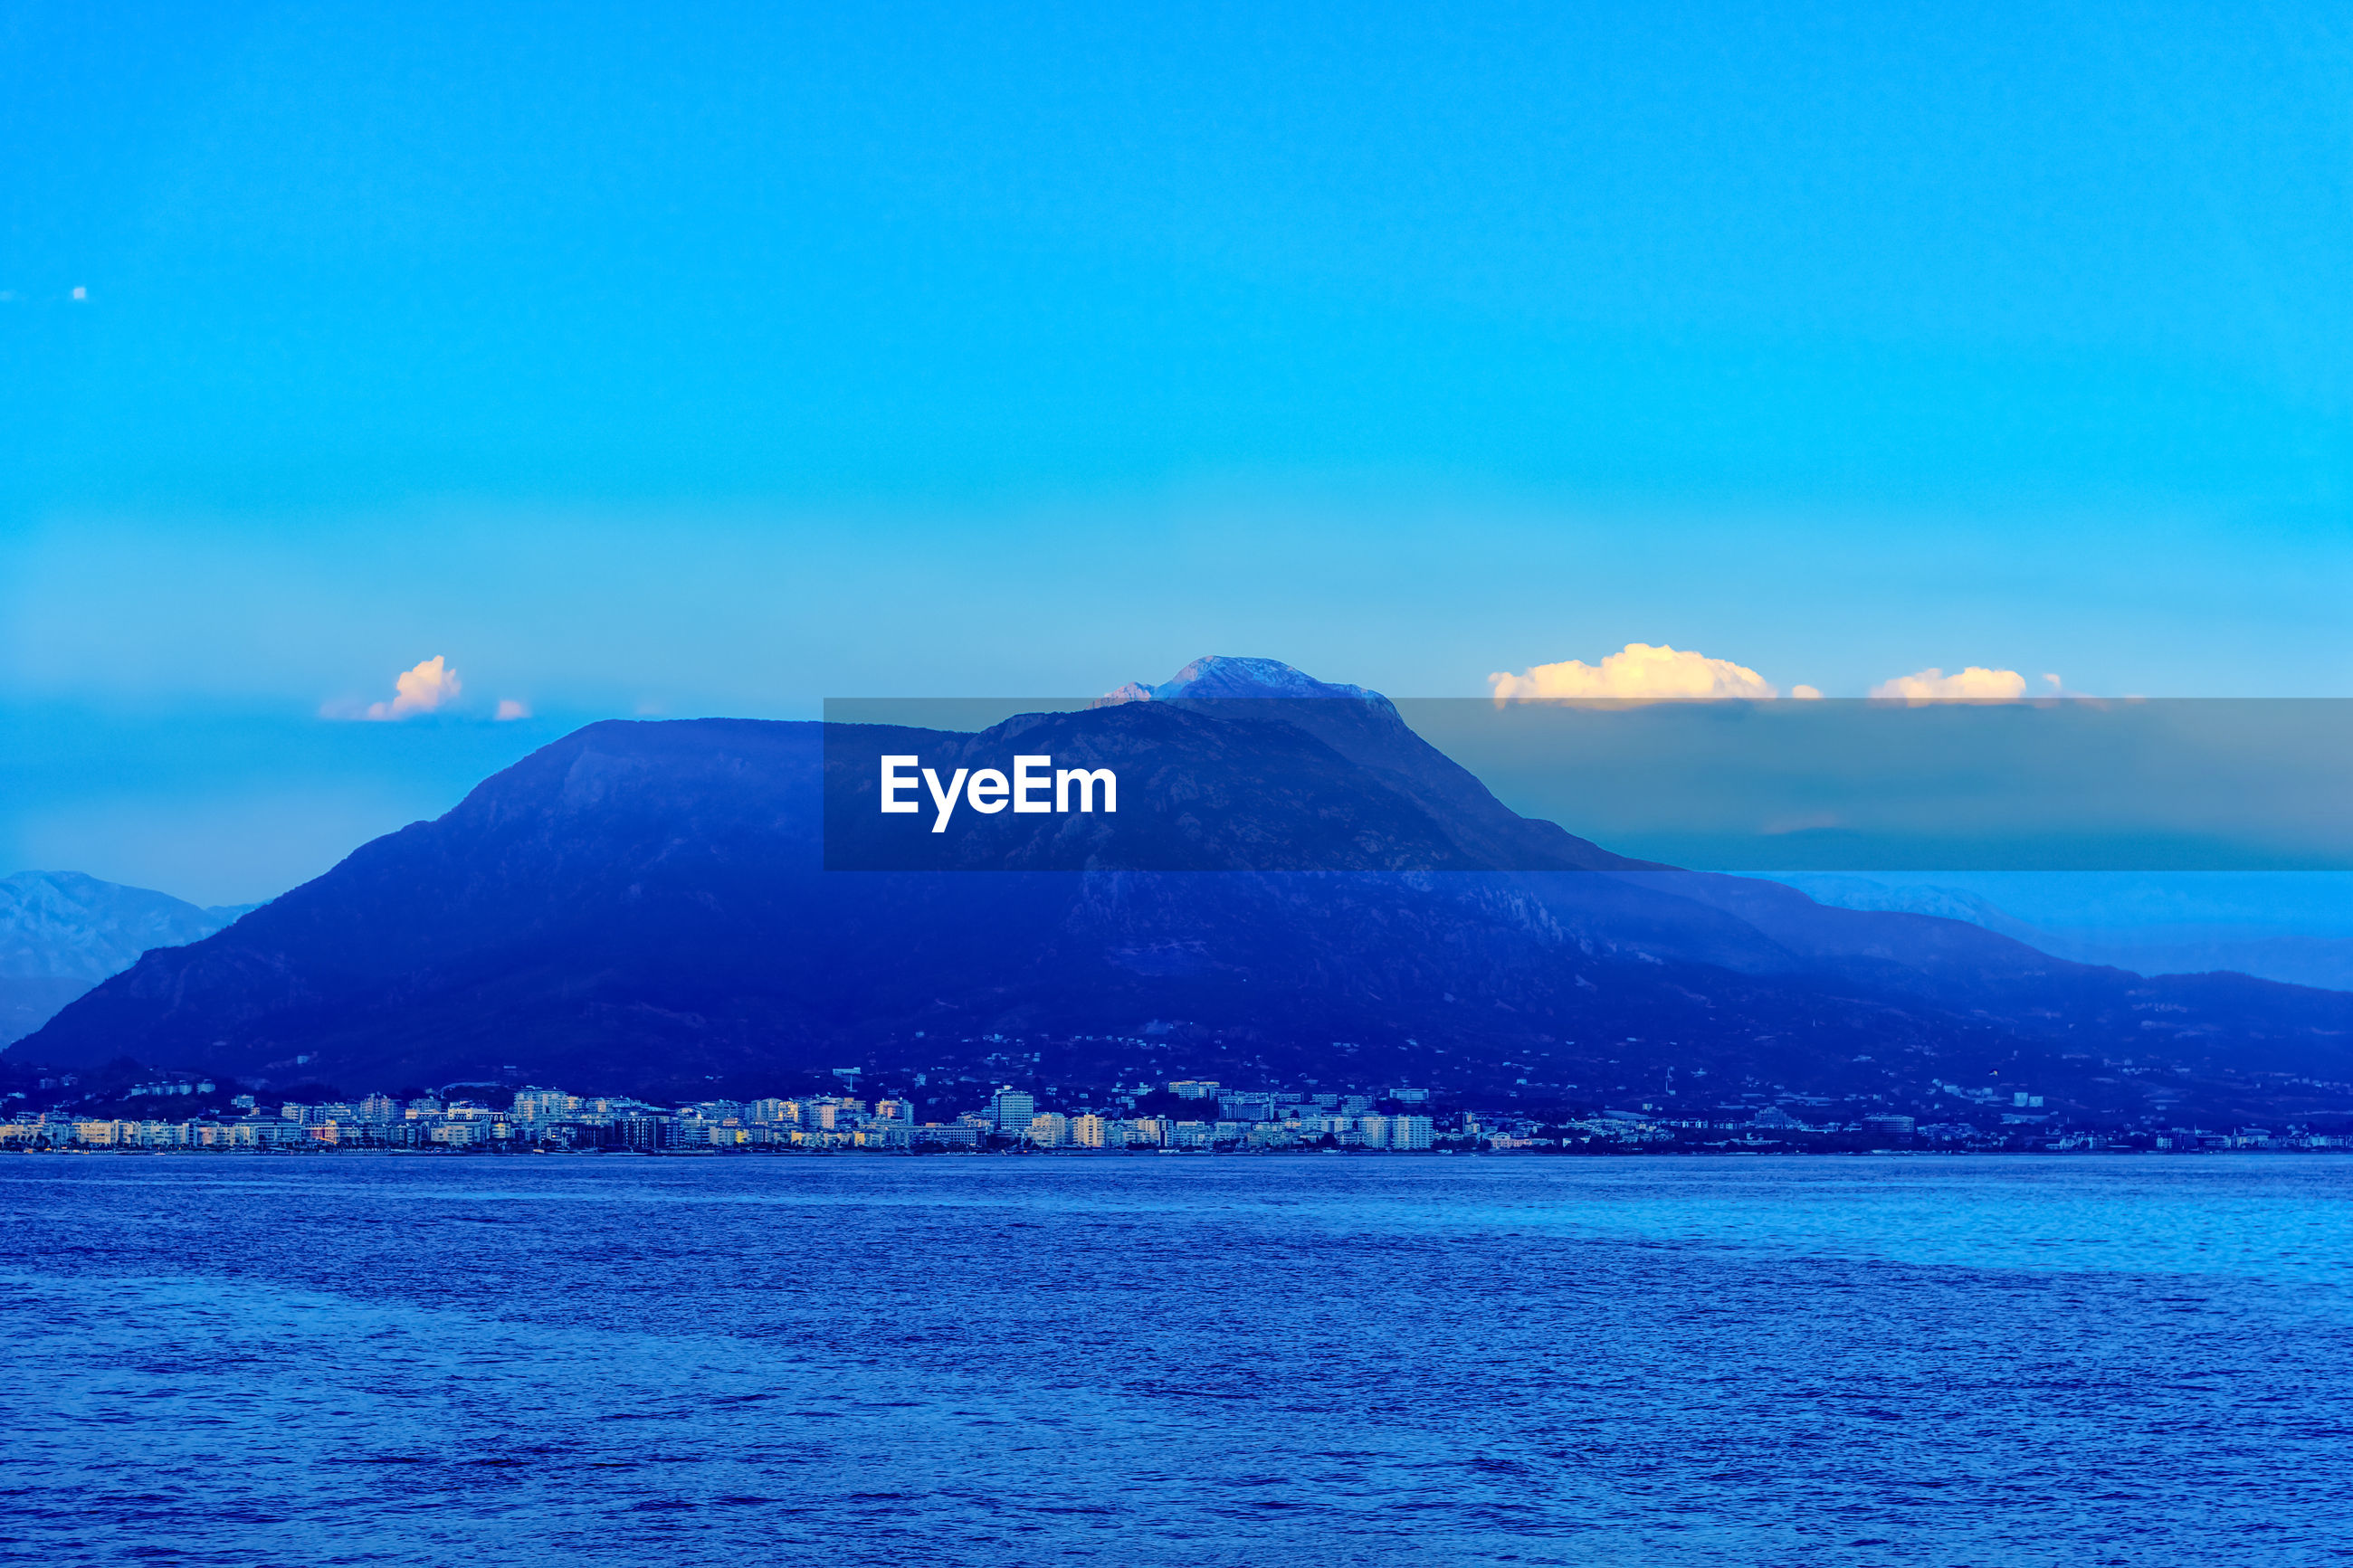 SCENIC VIEW OF SEA AGAINST MOUNTAIN RANGE